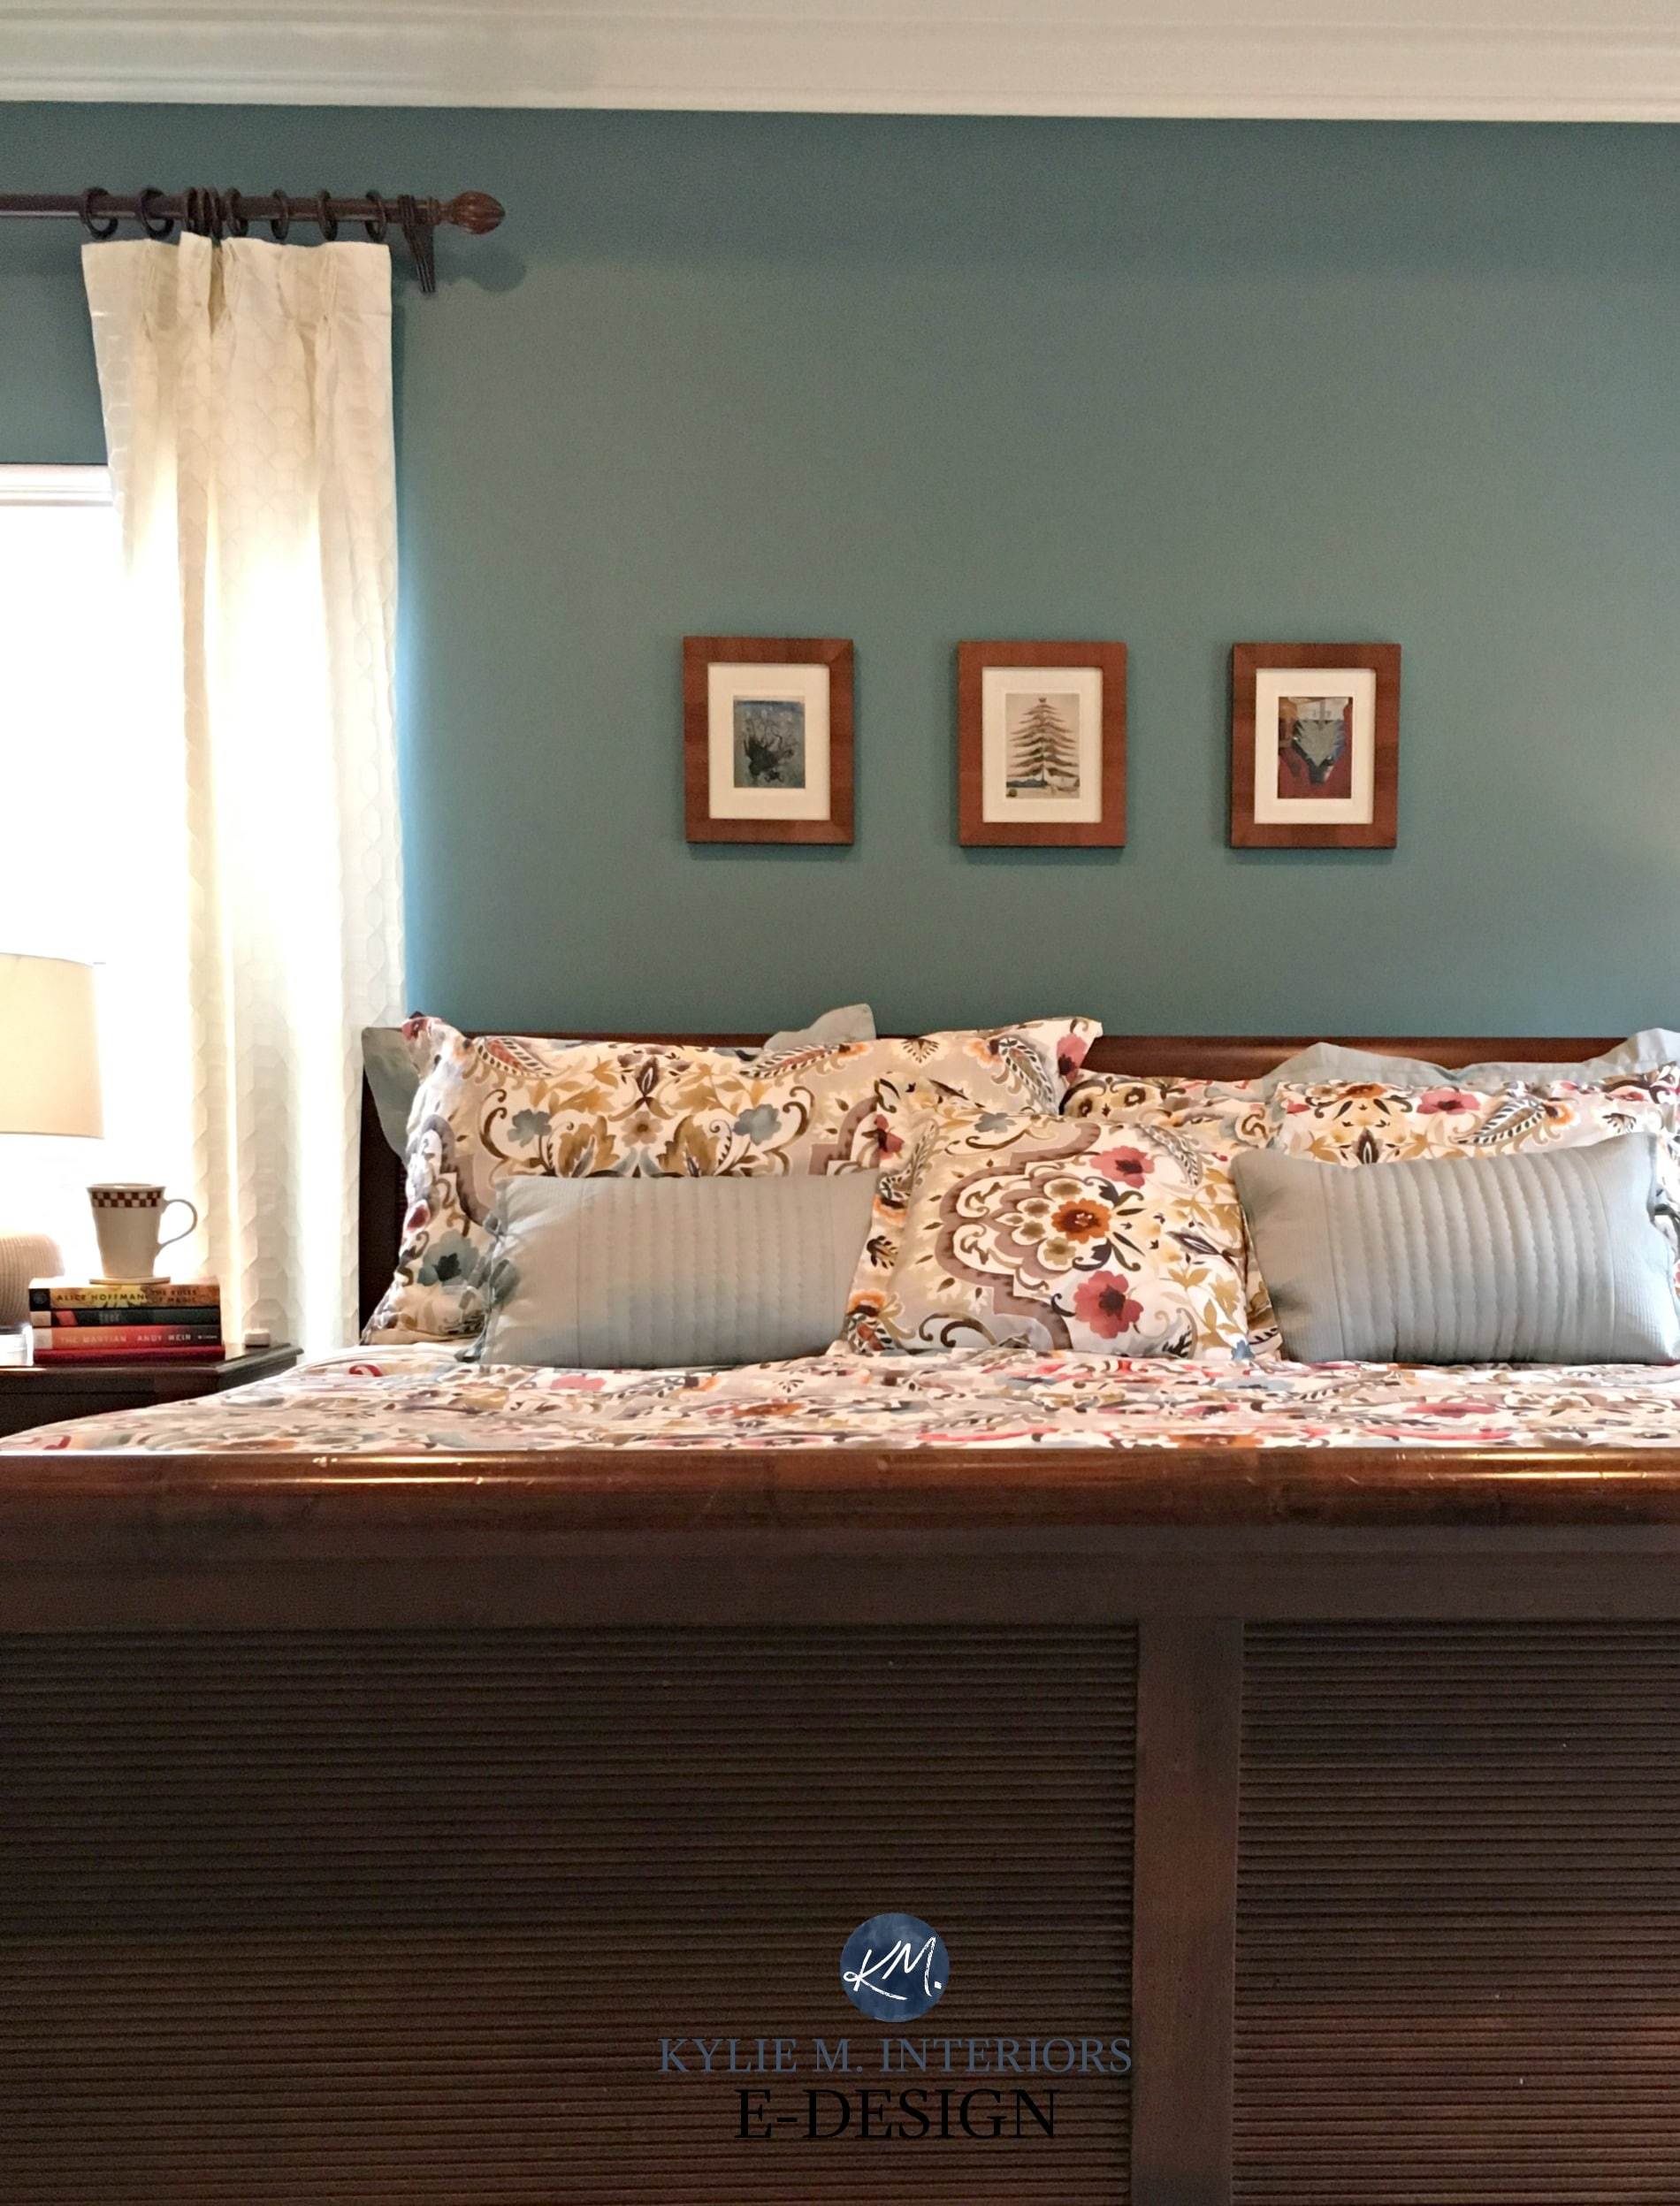 Sherwin Williams Moody Blue with cherry wood bedroom furniture